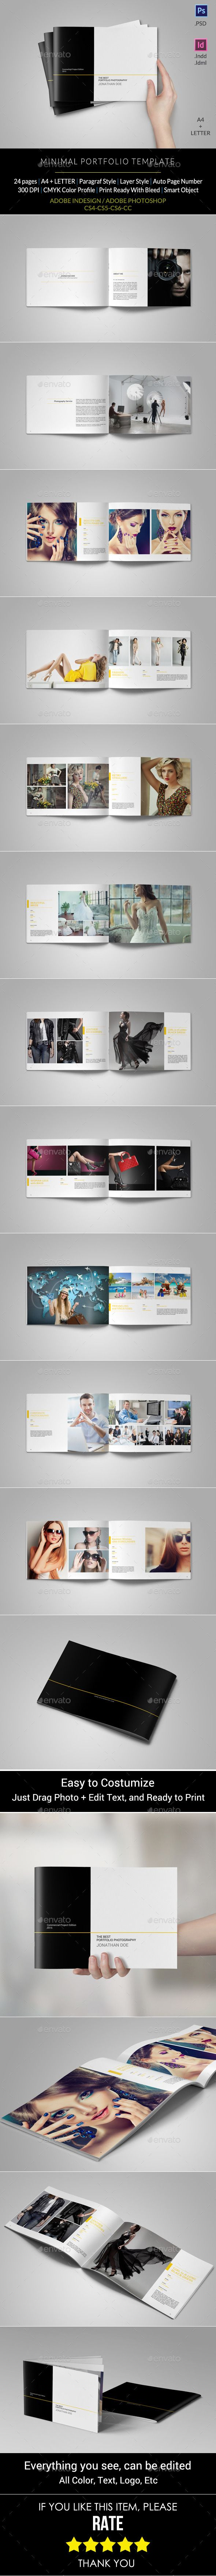 Minimal Portfolio Brochure Template #design Download: http://graphicriver.net/item/minimal-portfolio/11350344?ref=ksioks